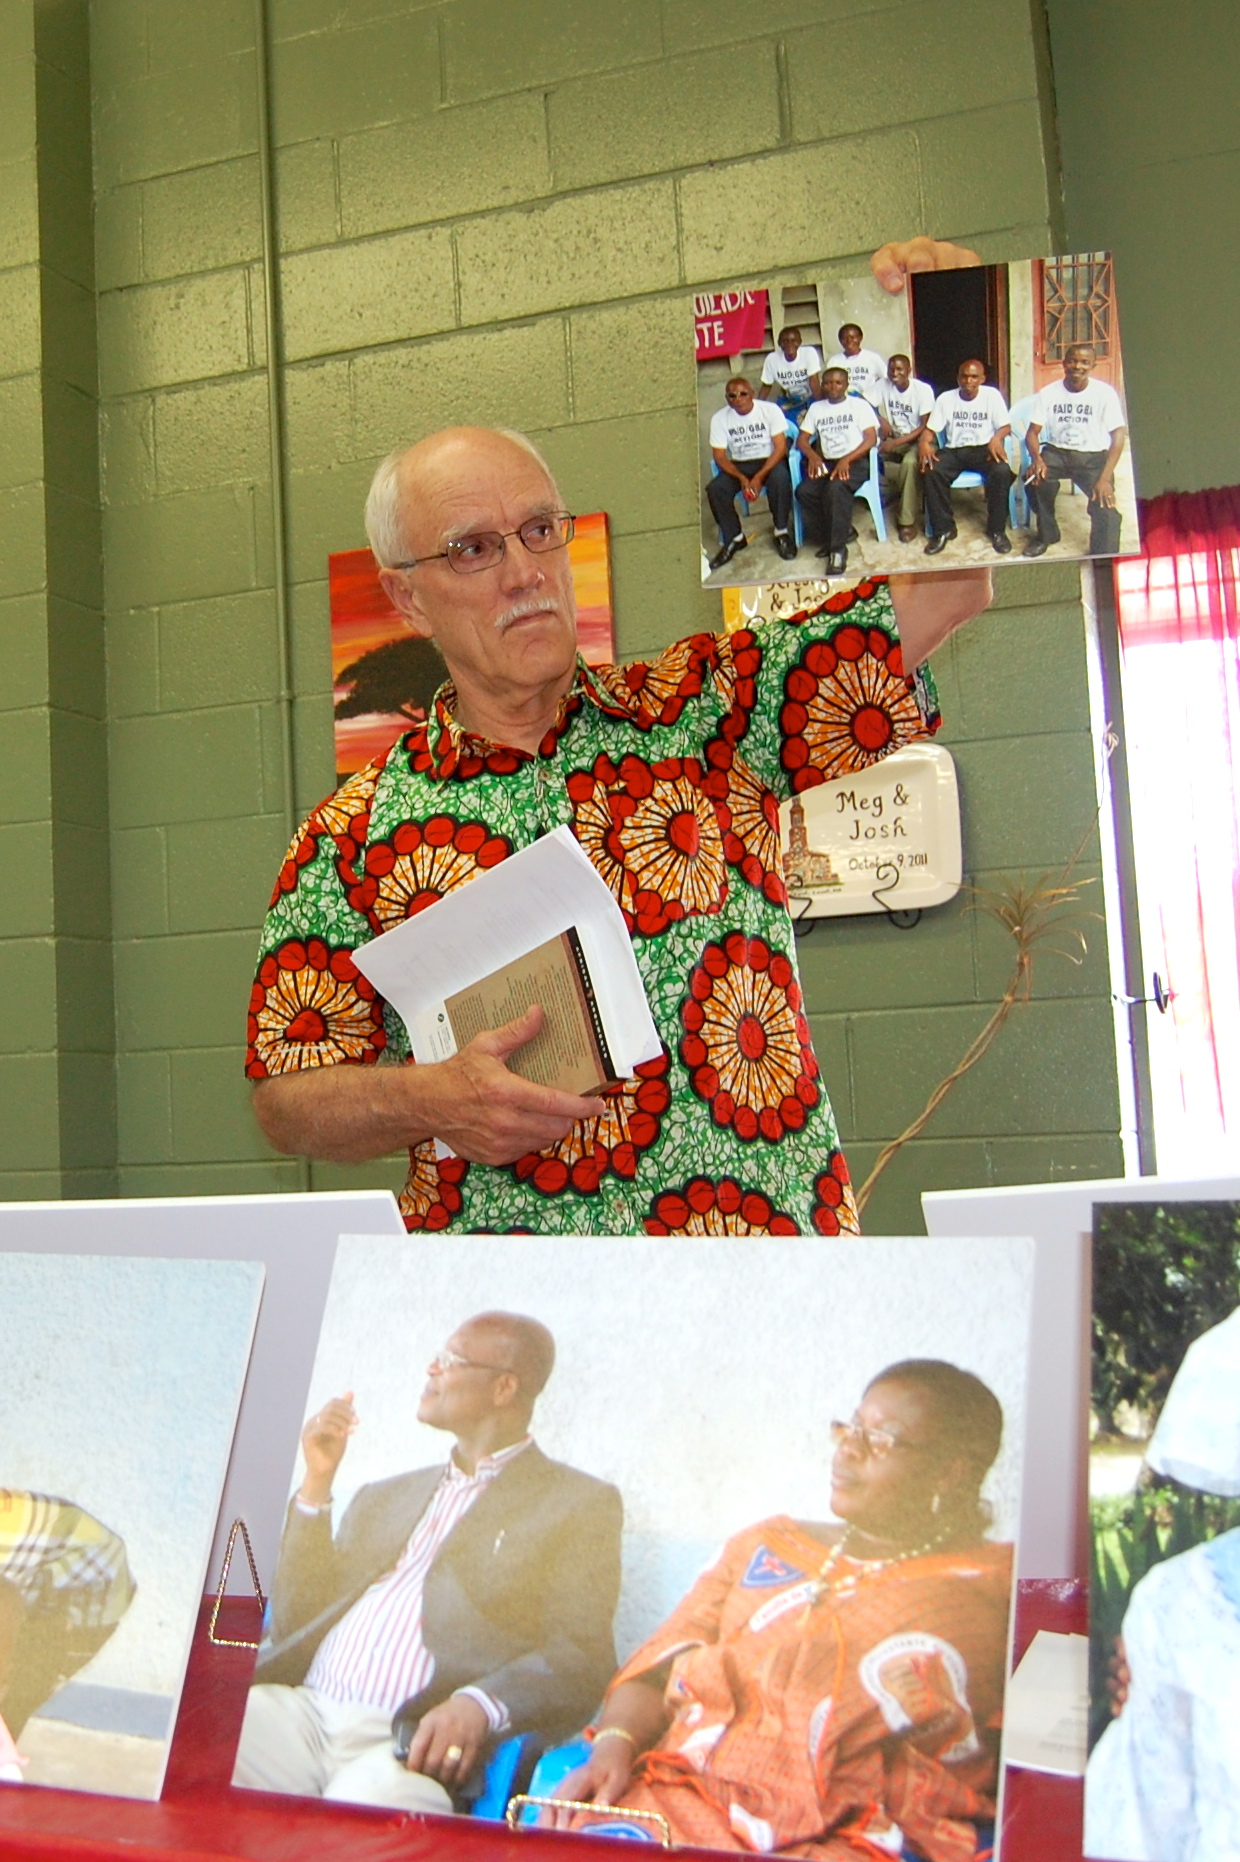 Jim Calli, GBA Board member, displays photographs from DR Congo